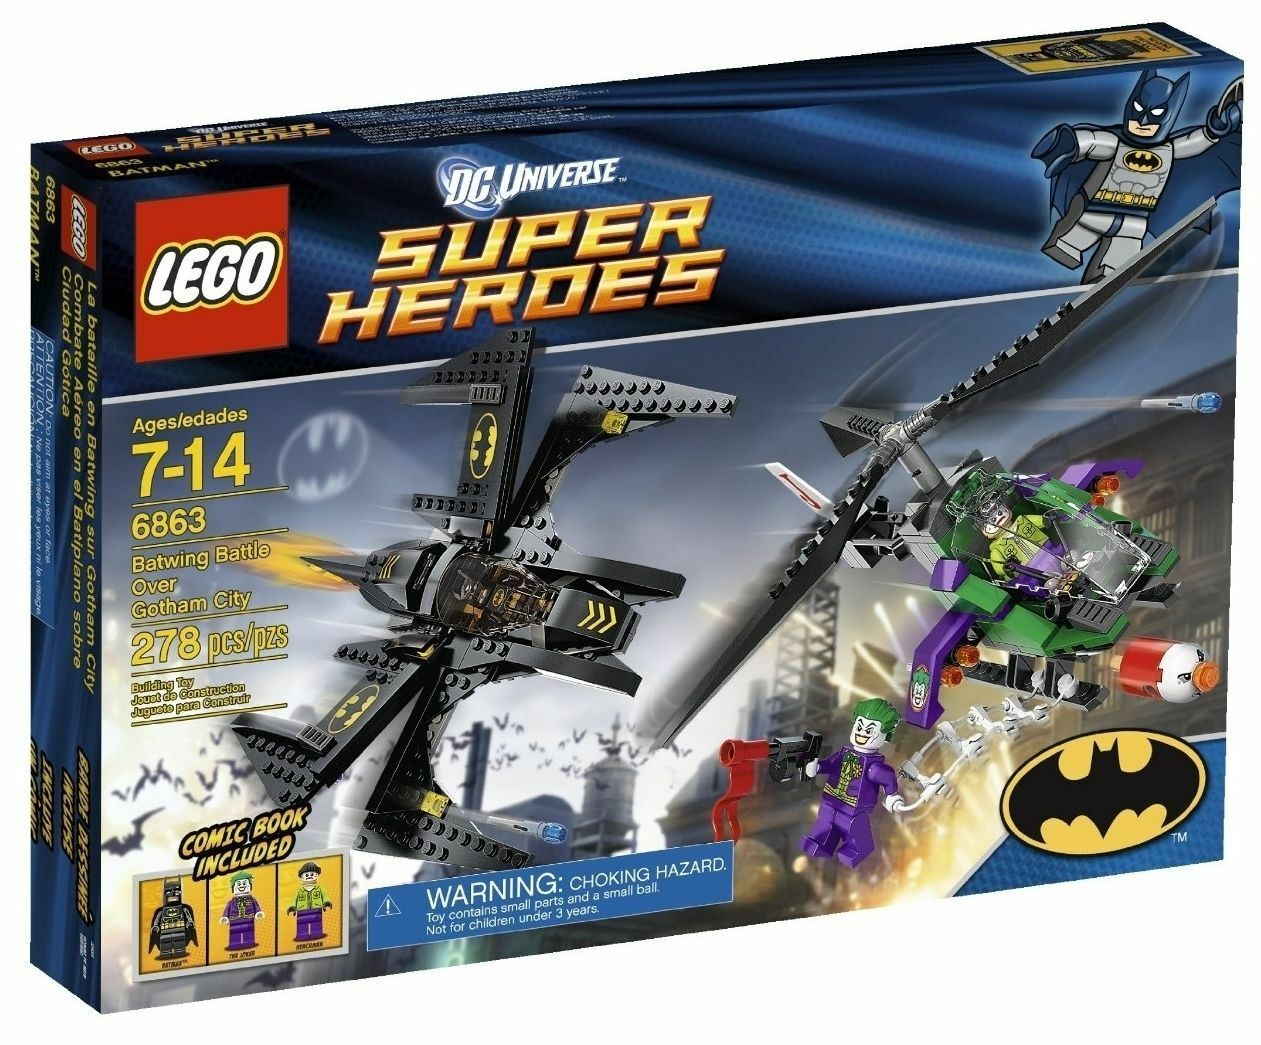 Lego 6863 Batman/Joker: Batwing Battle Over Gotham City SEALED NEW RETIrosso